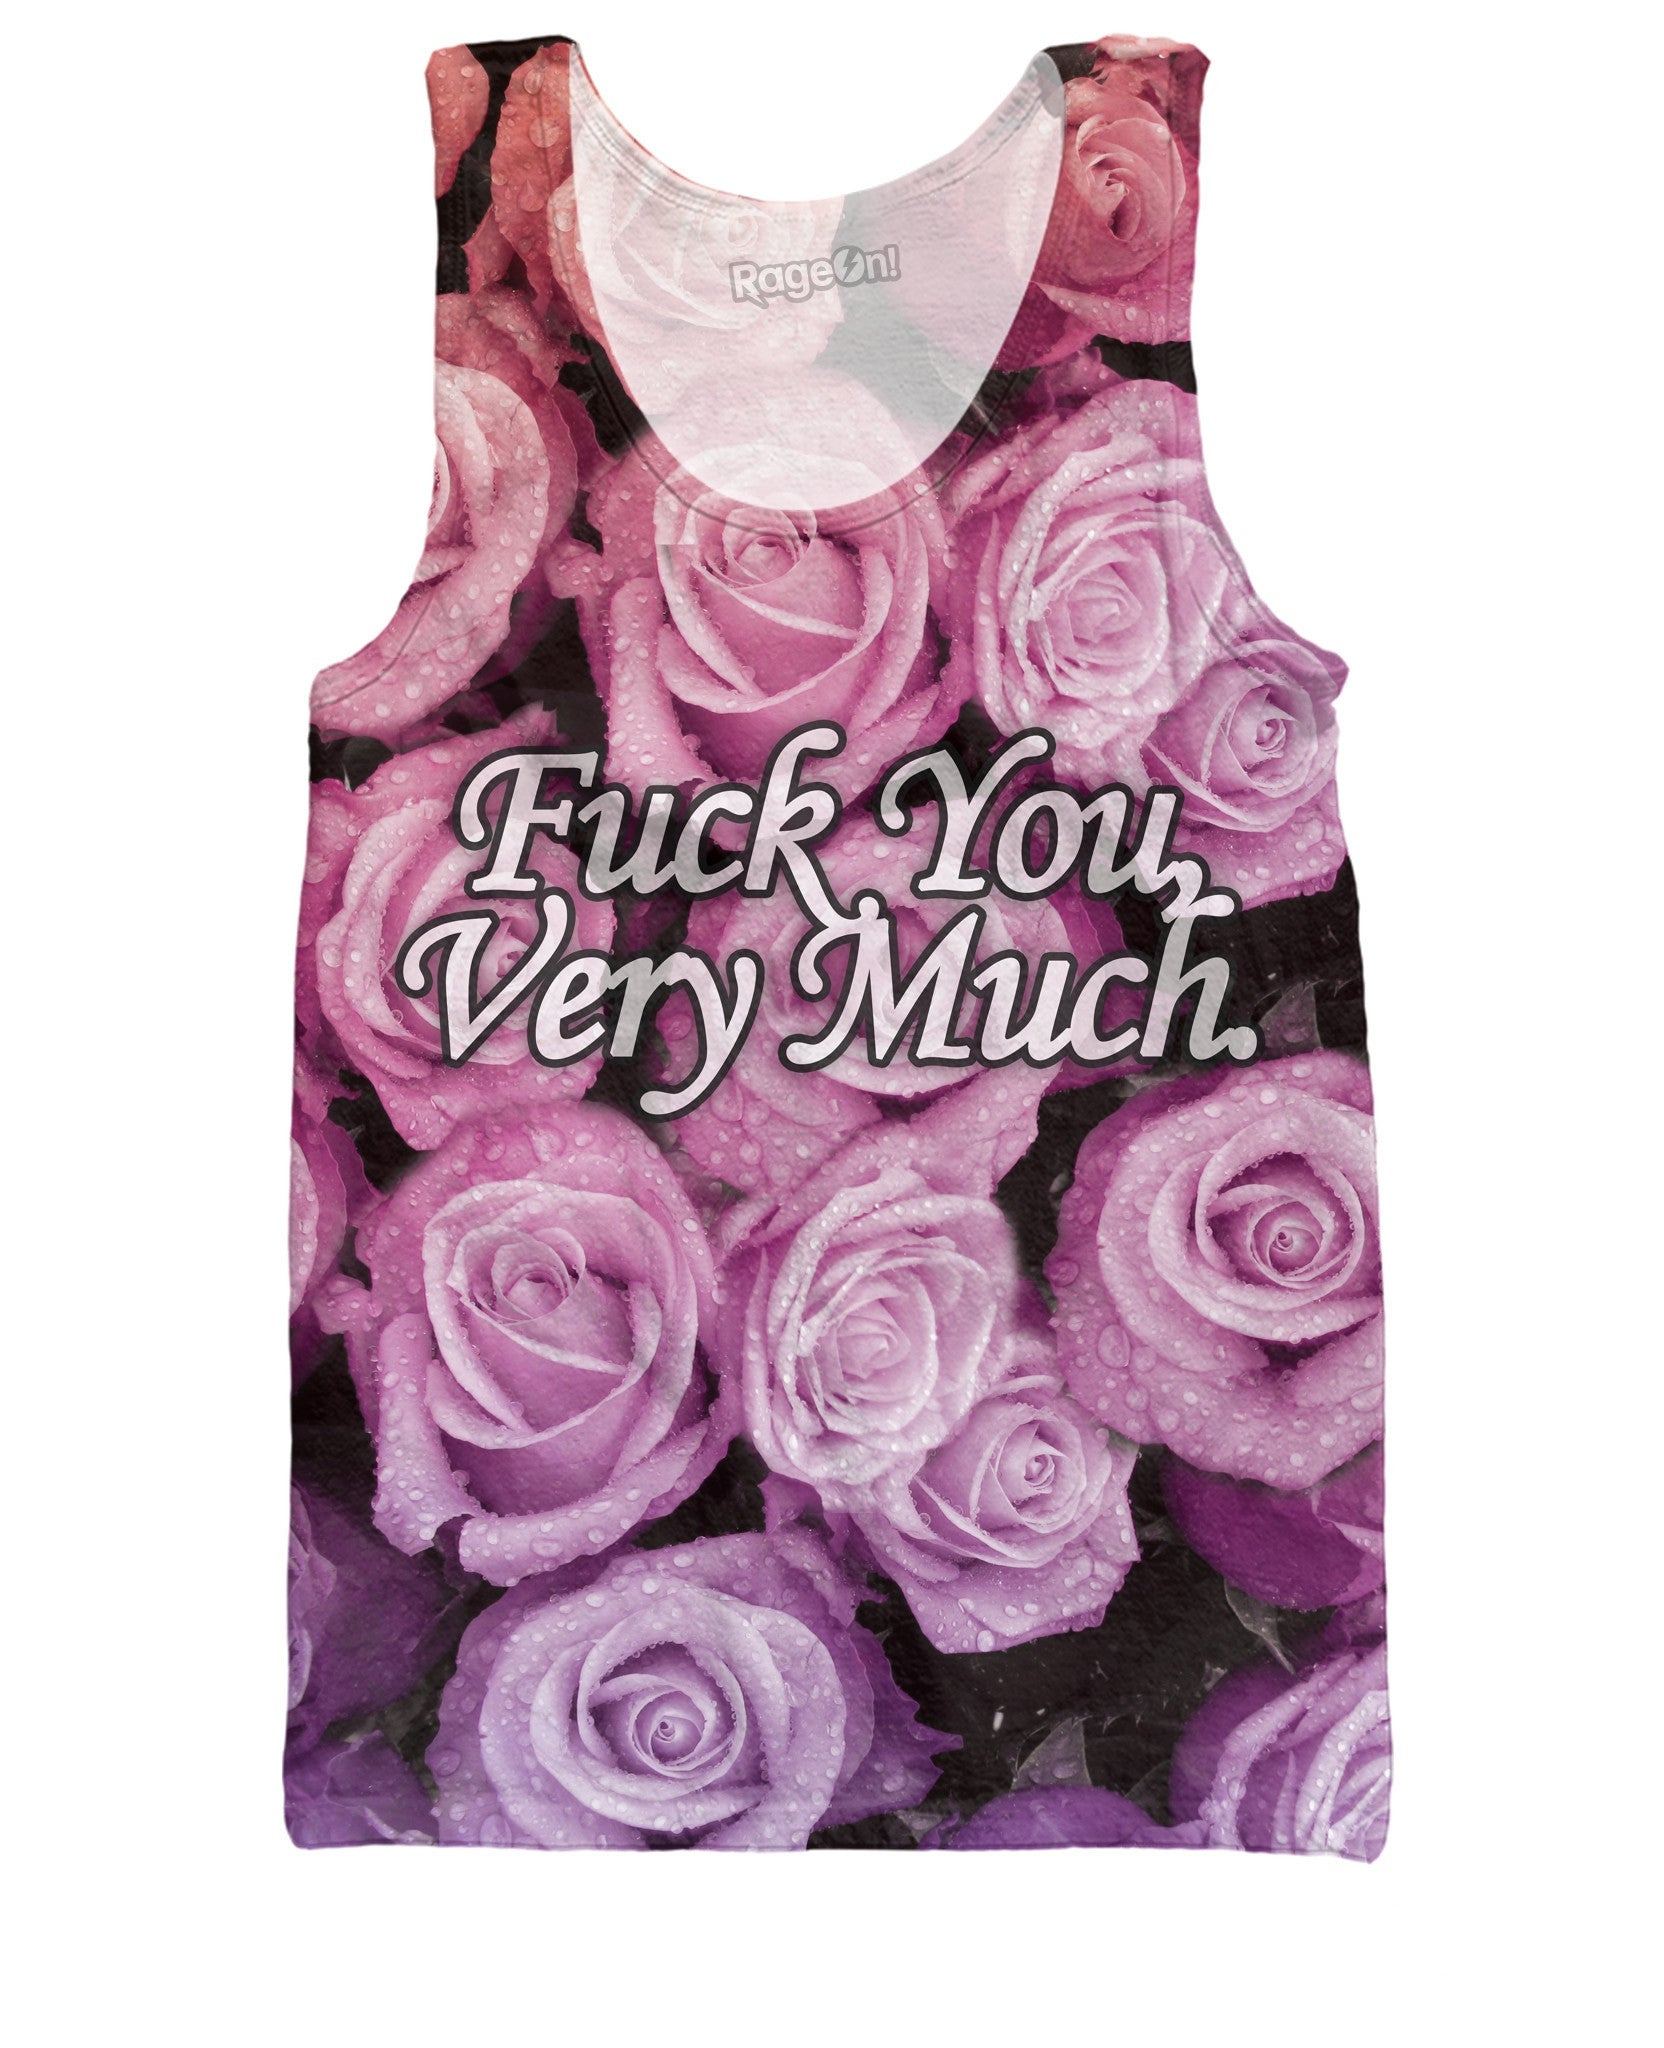 Fuck You Very Much Tank Top - TShirtsRUS.co